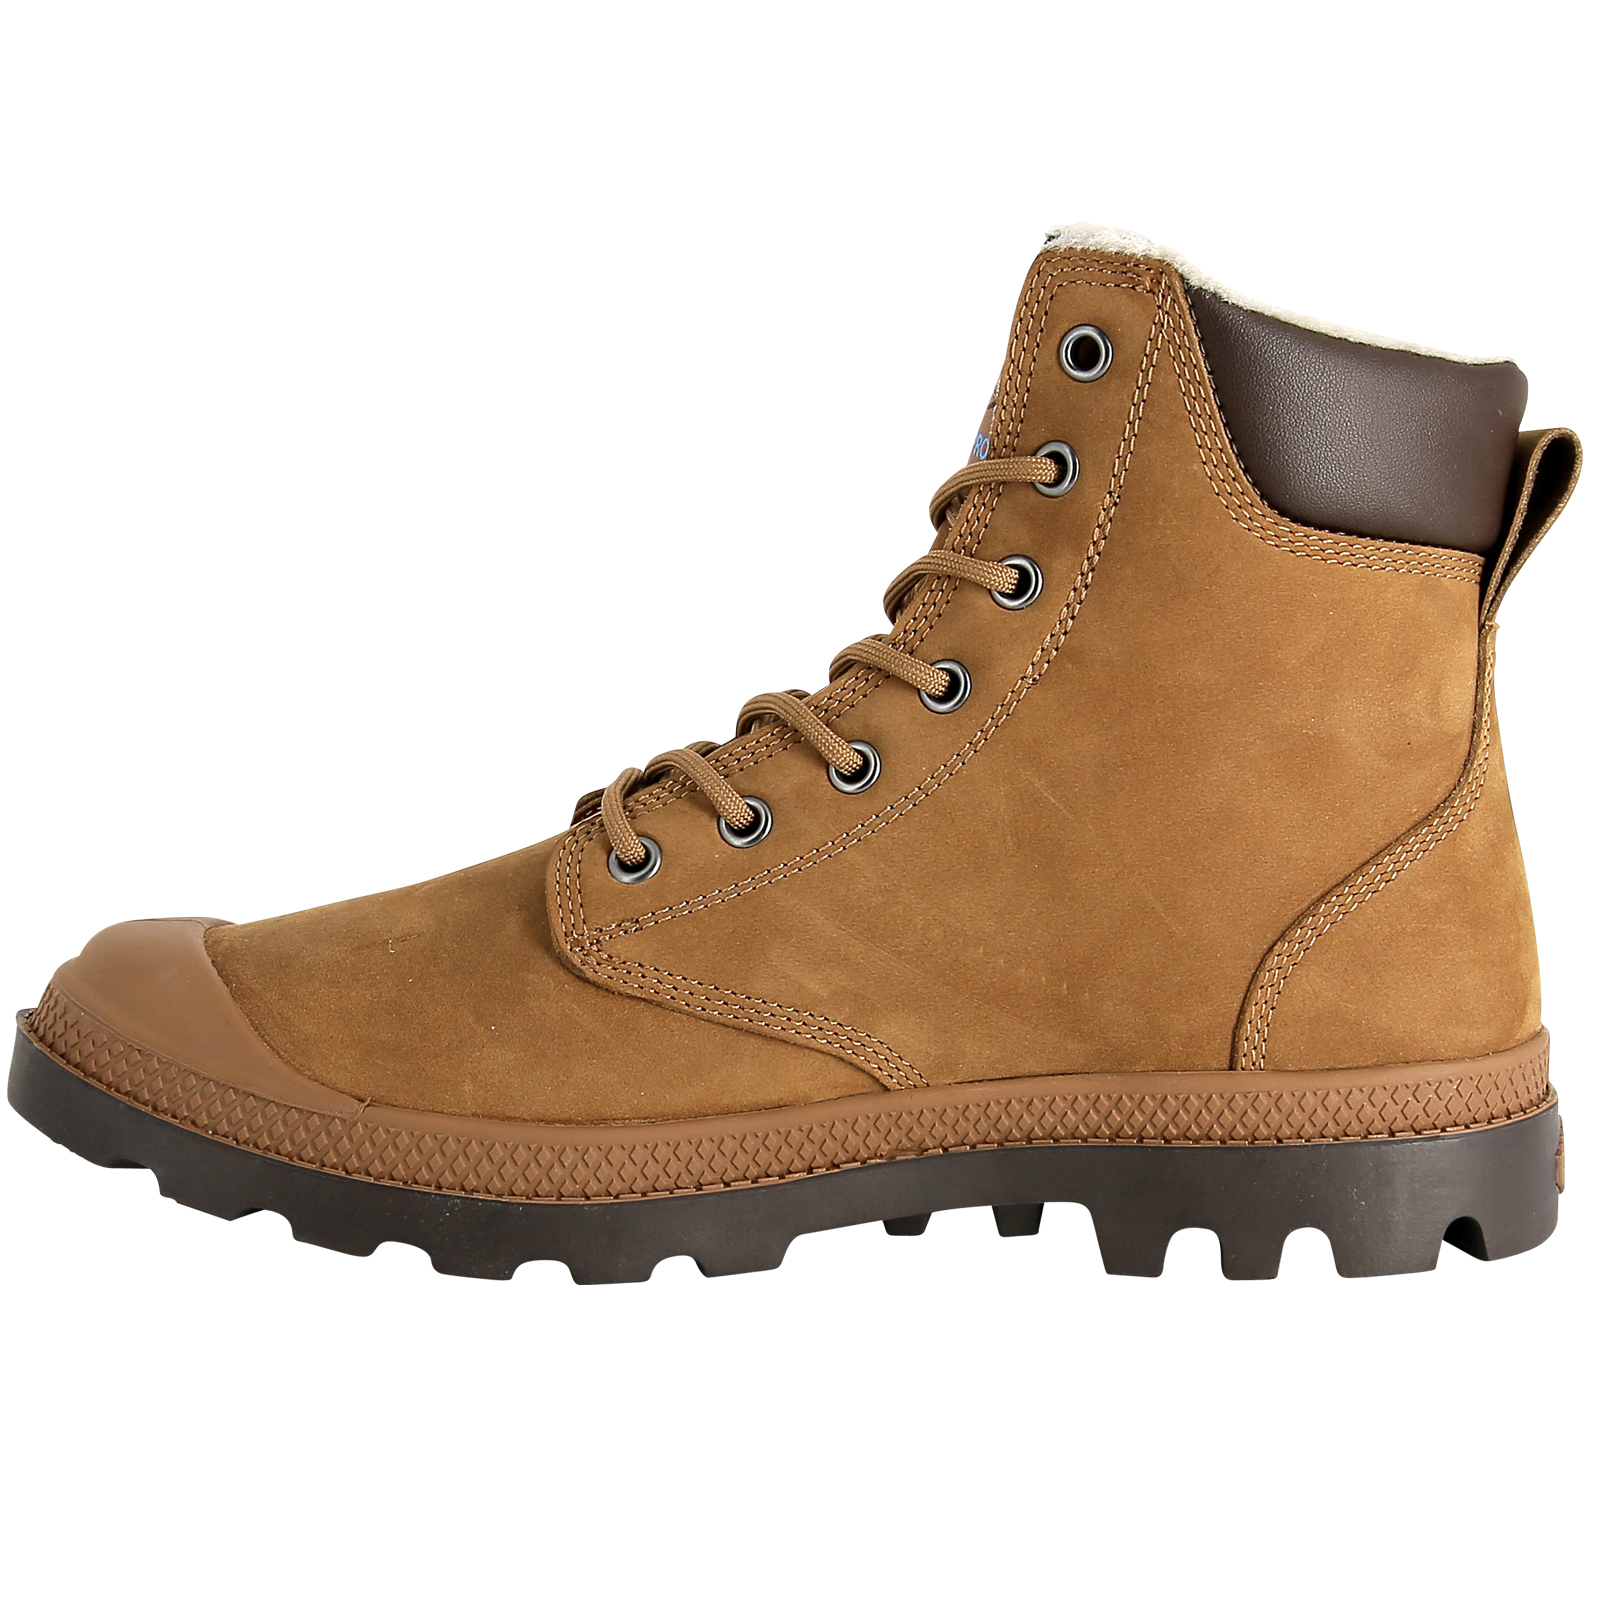 Palladium Hombre Pampa Sport Cuff Water Proof Leather Leather Leather Zapatos Wool Lined Ankle botas be18a2